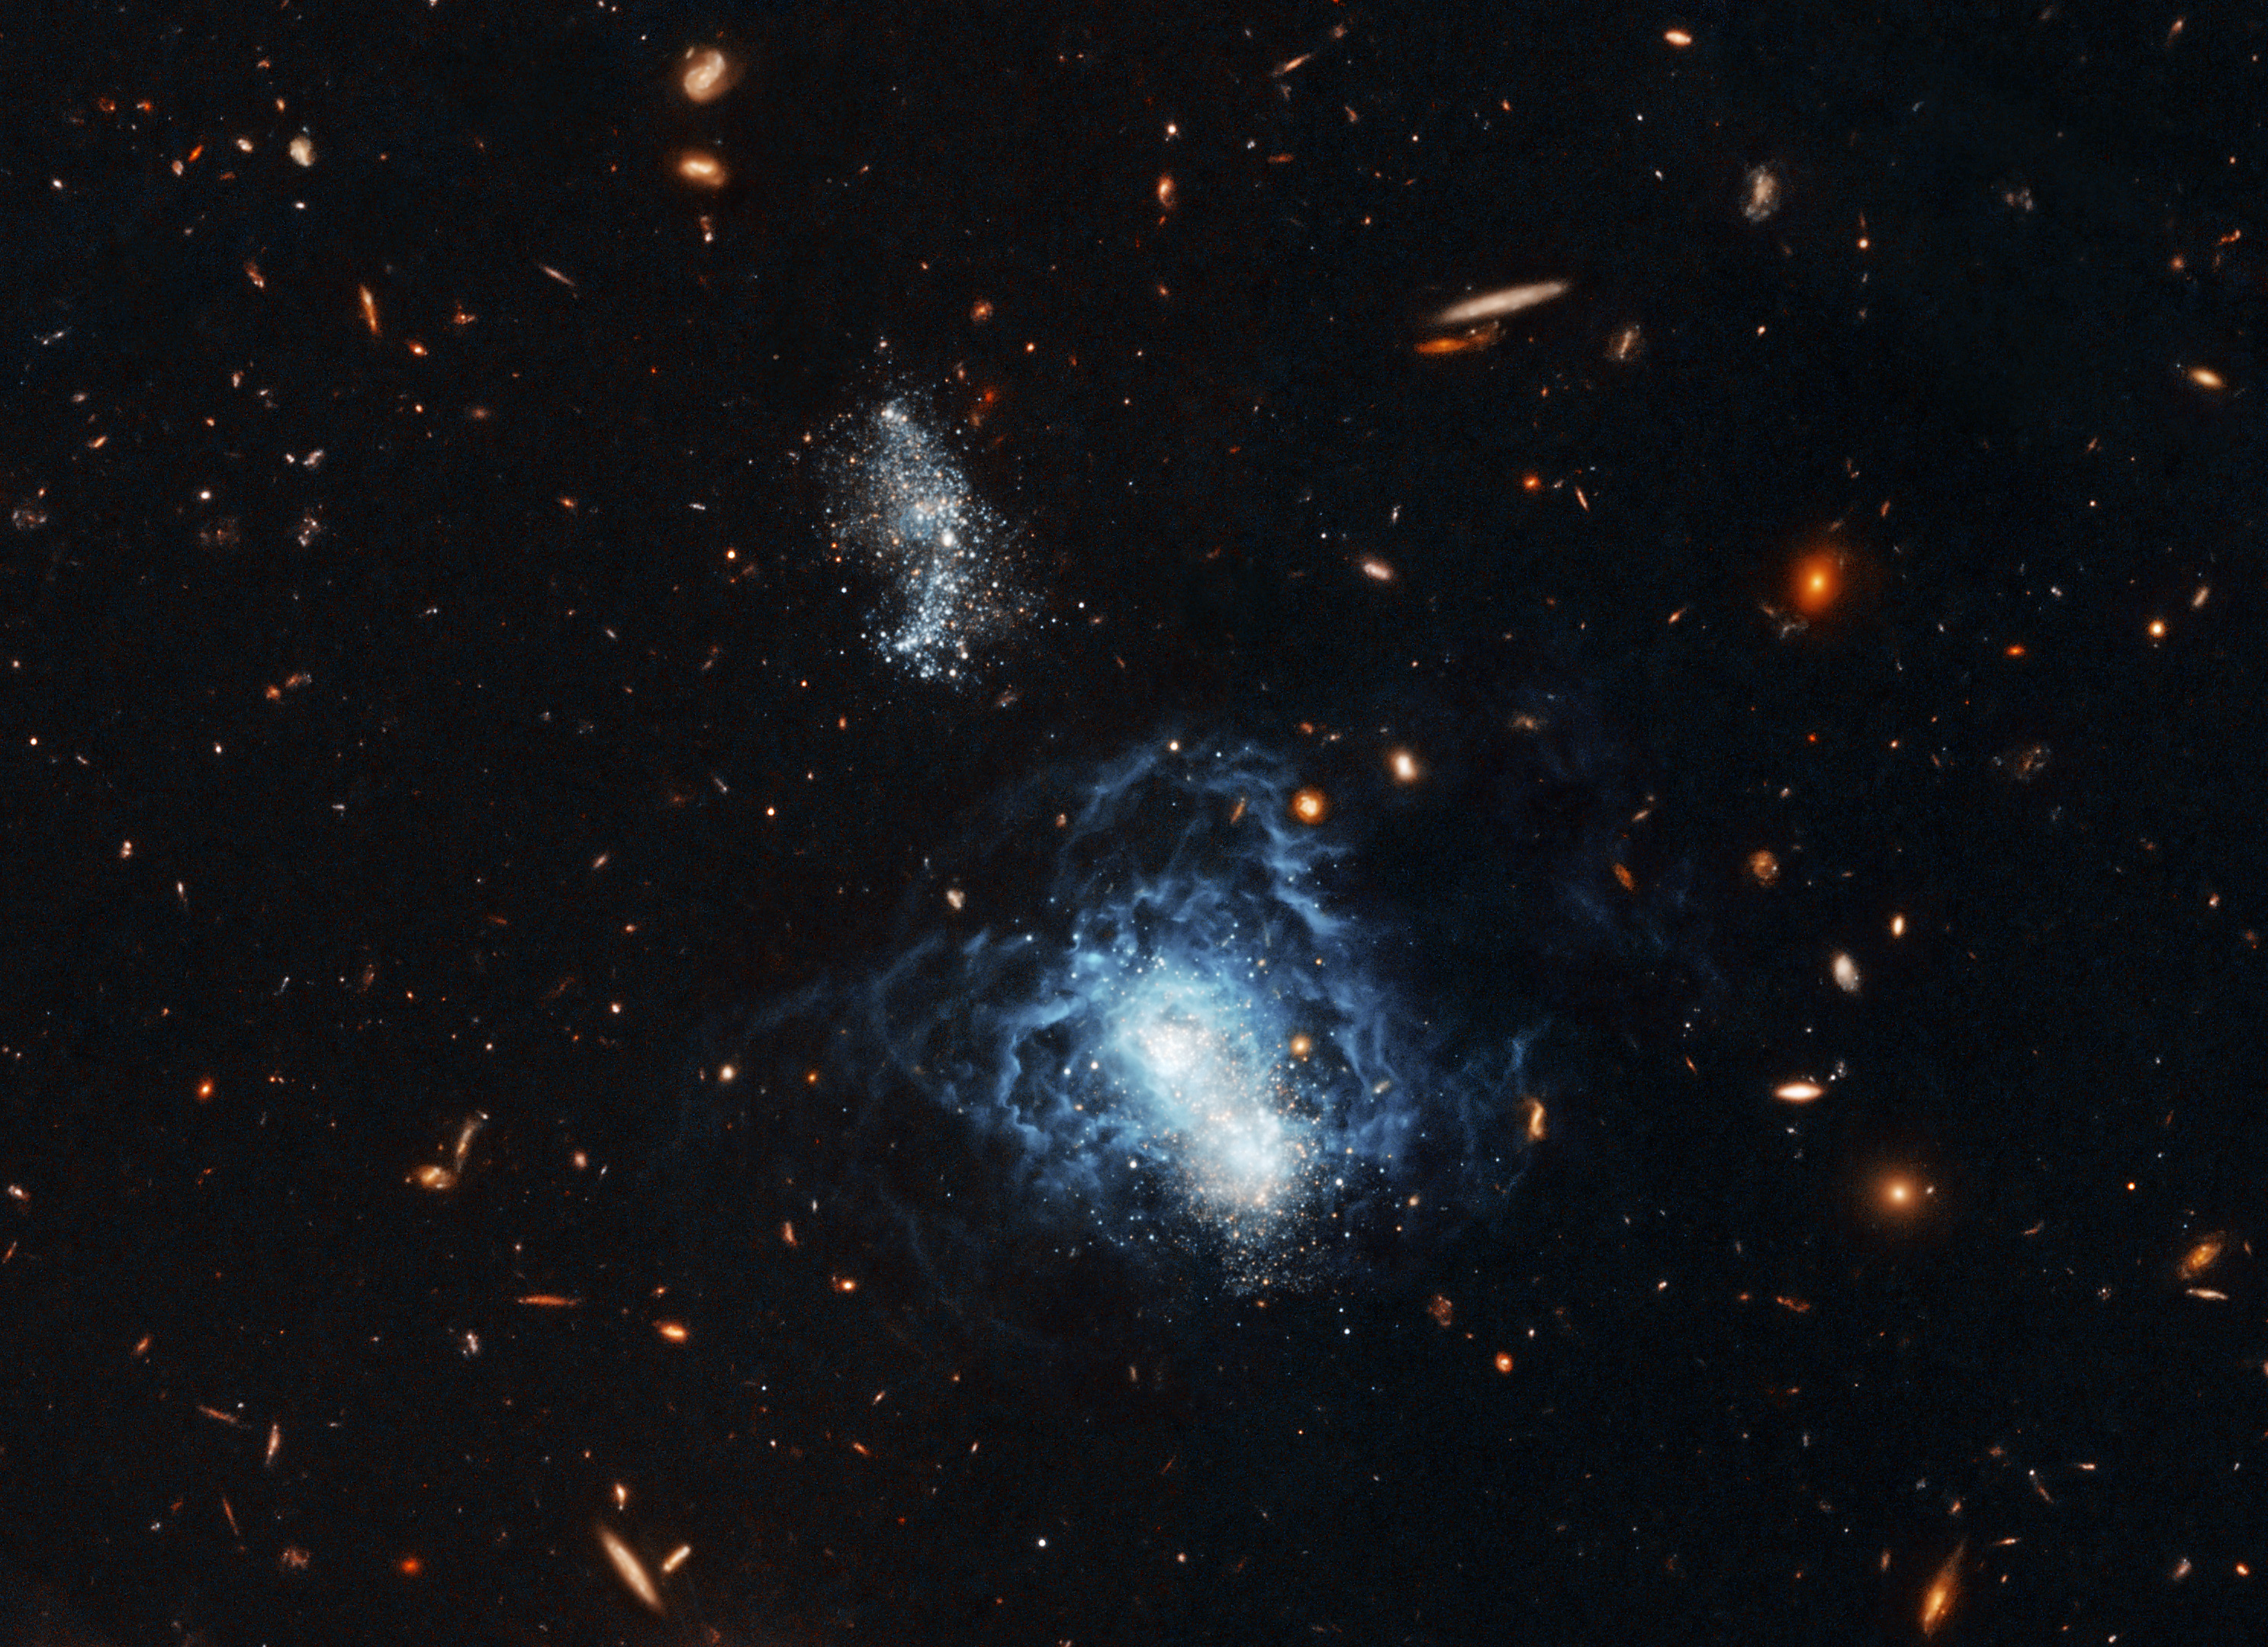 nasa galaxy pictures high resolution - photo #41